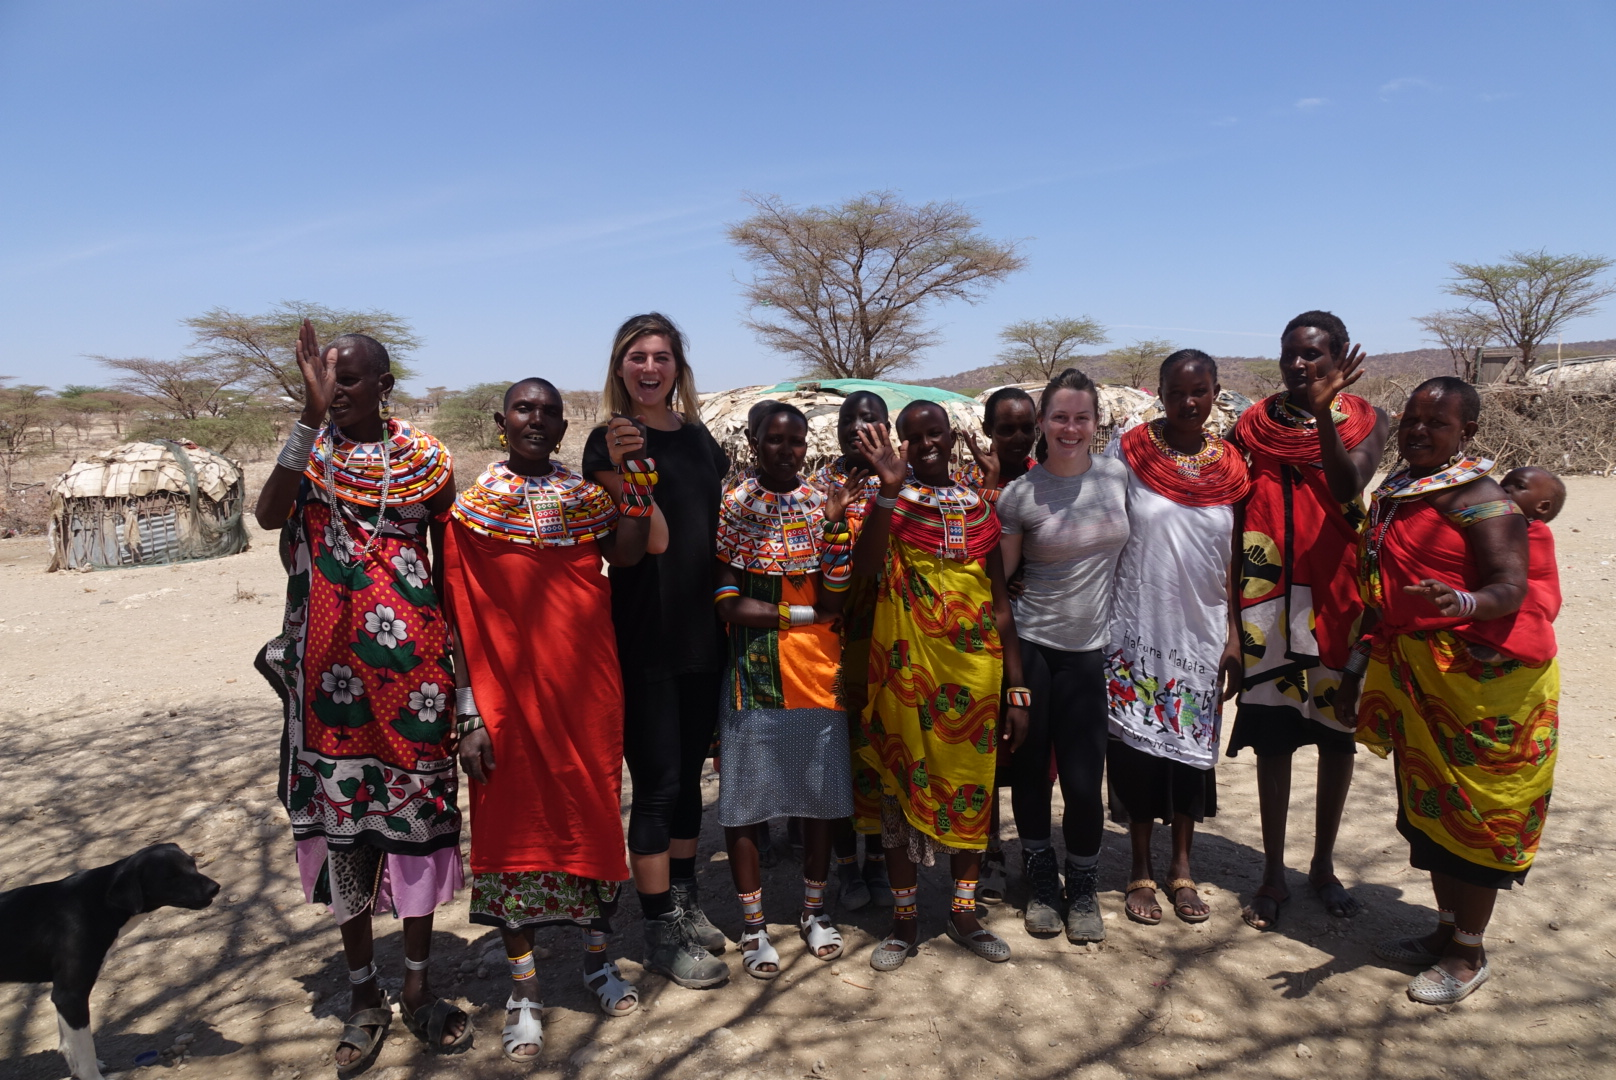 Welcomed into the matriarchal women's village in Samburu, Kenya on our first day.